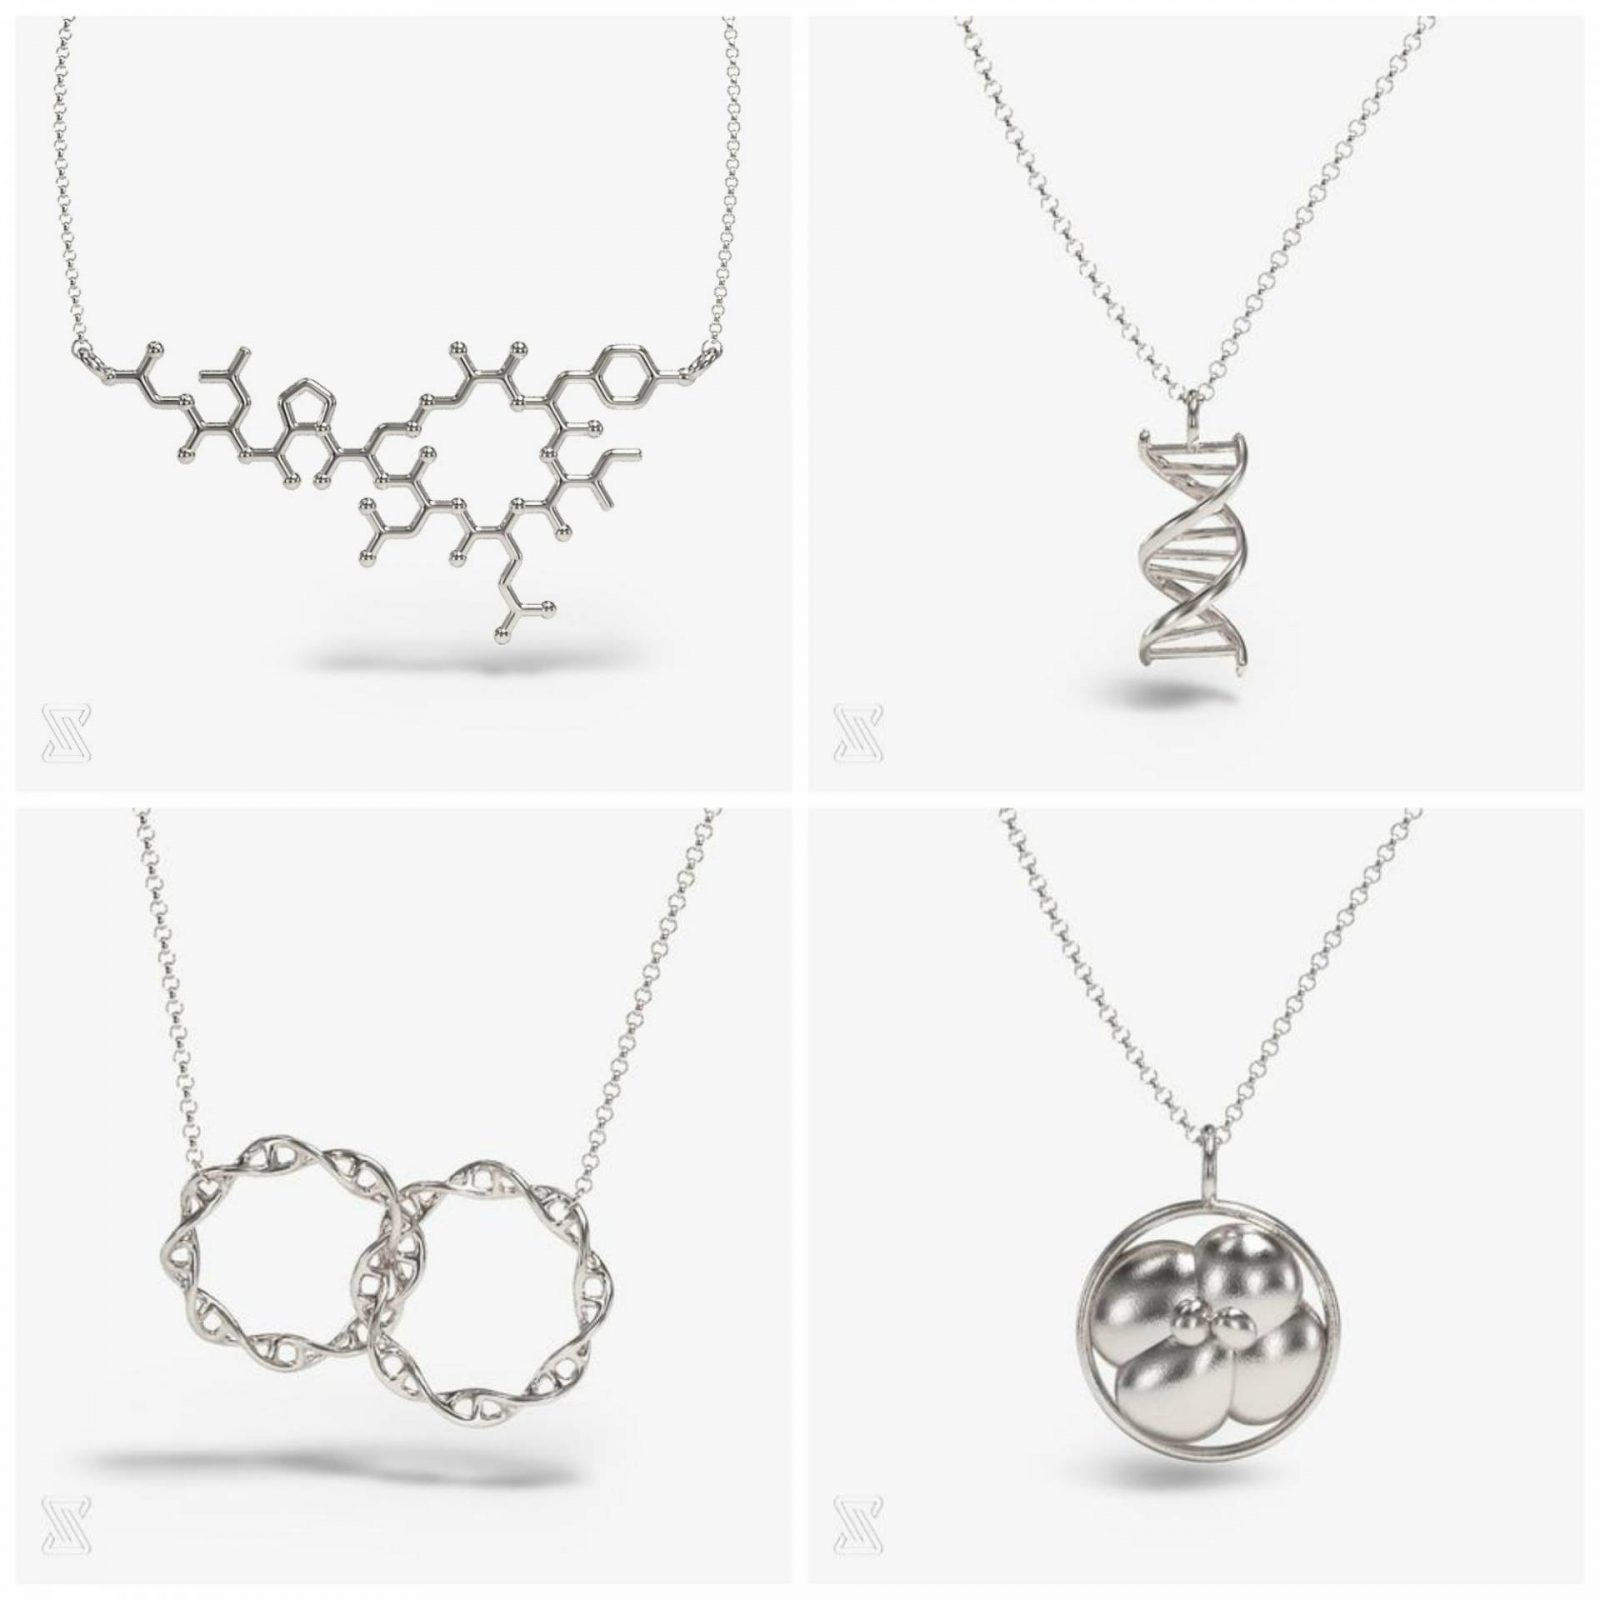 Mother's Day Gift Ideas Inspired by Nature somersault 18:24 science jewellery